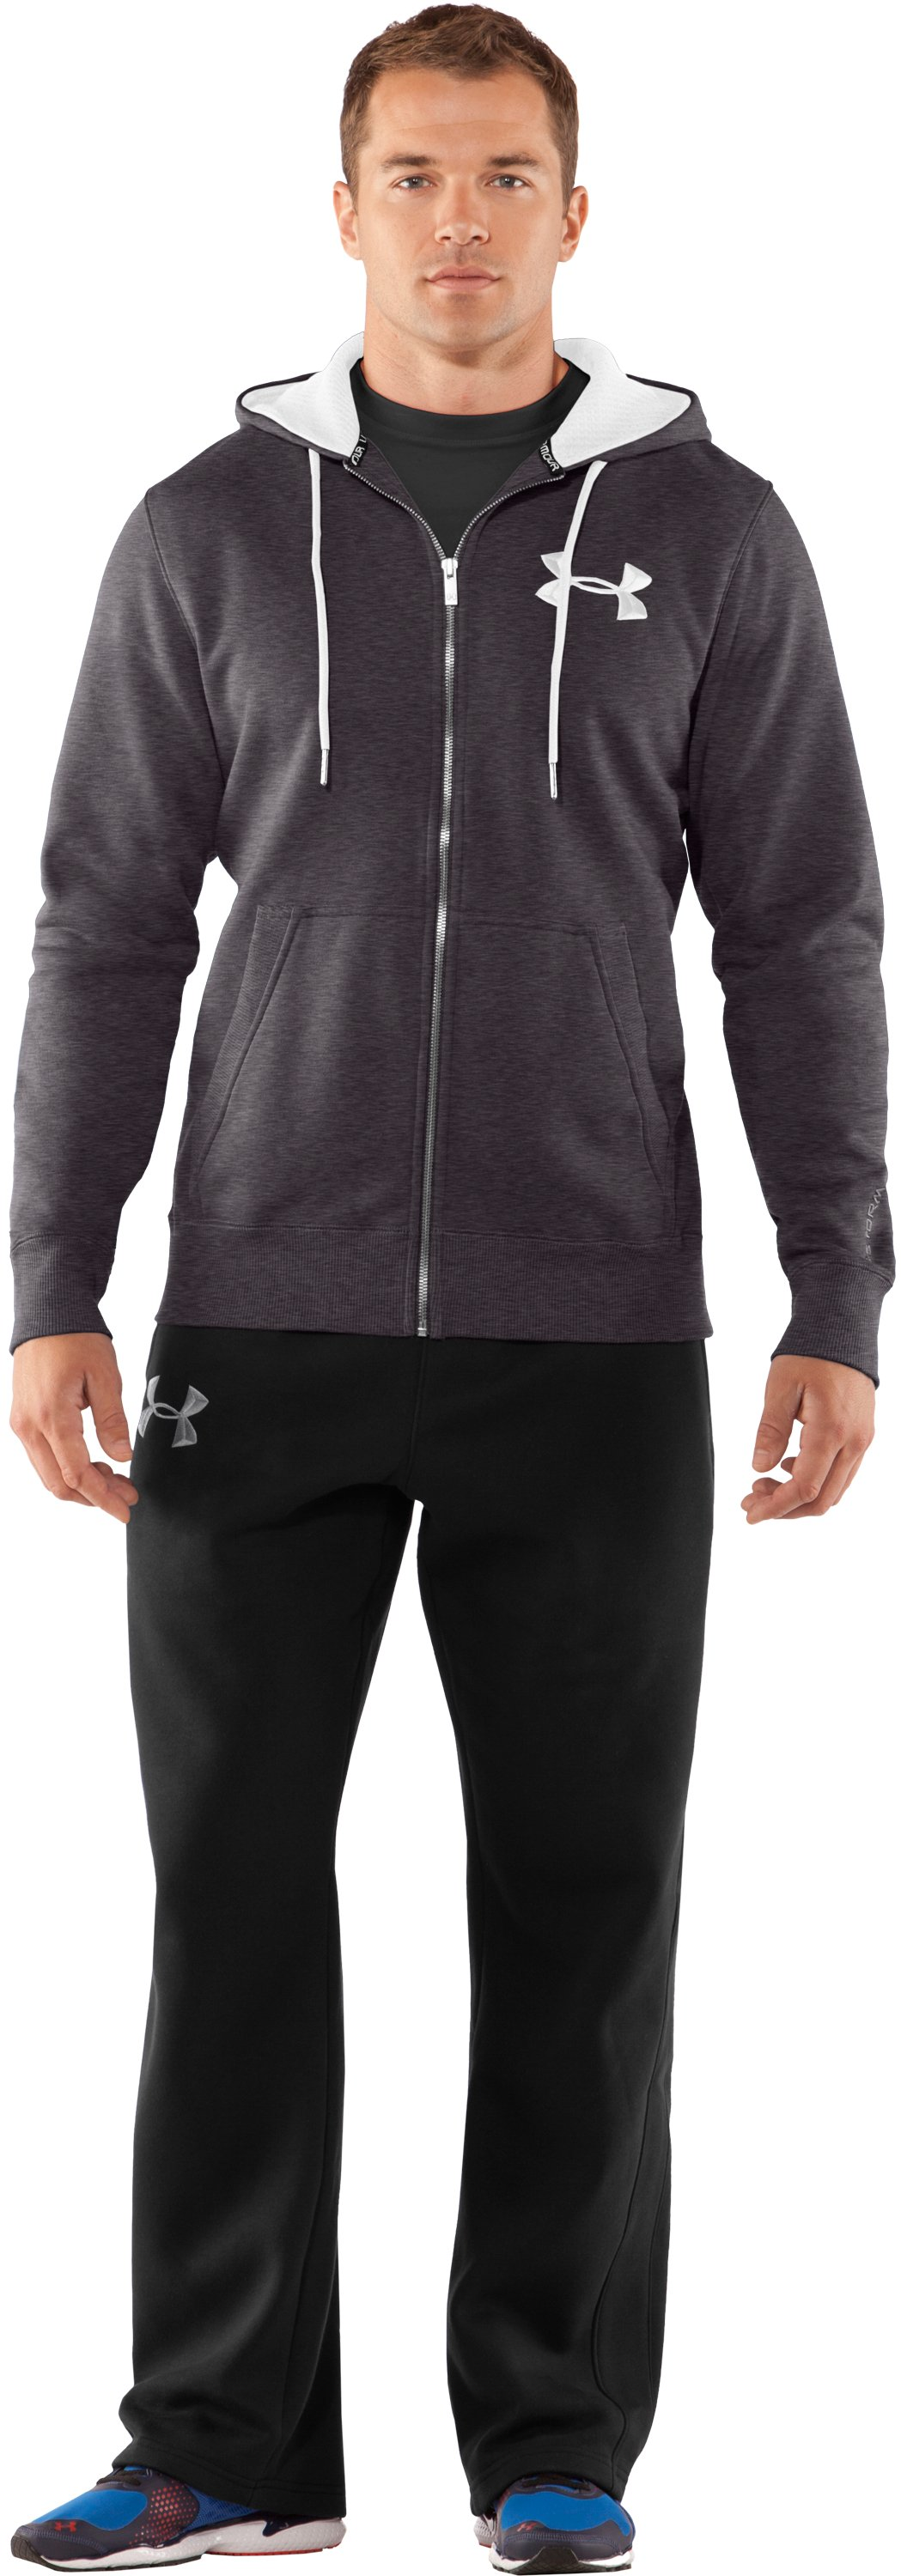 Men's Charged Cotton® Storm Full Zip Hoodie, Carbon Heather, Front